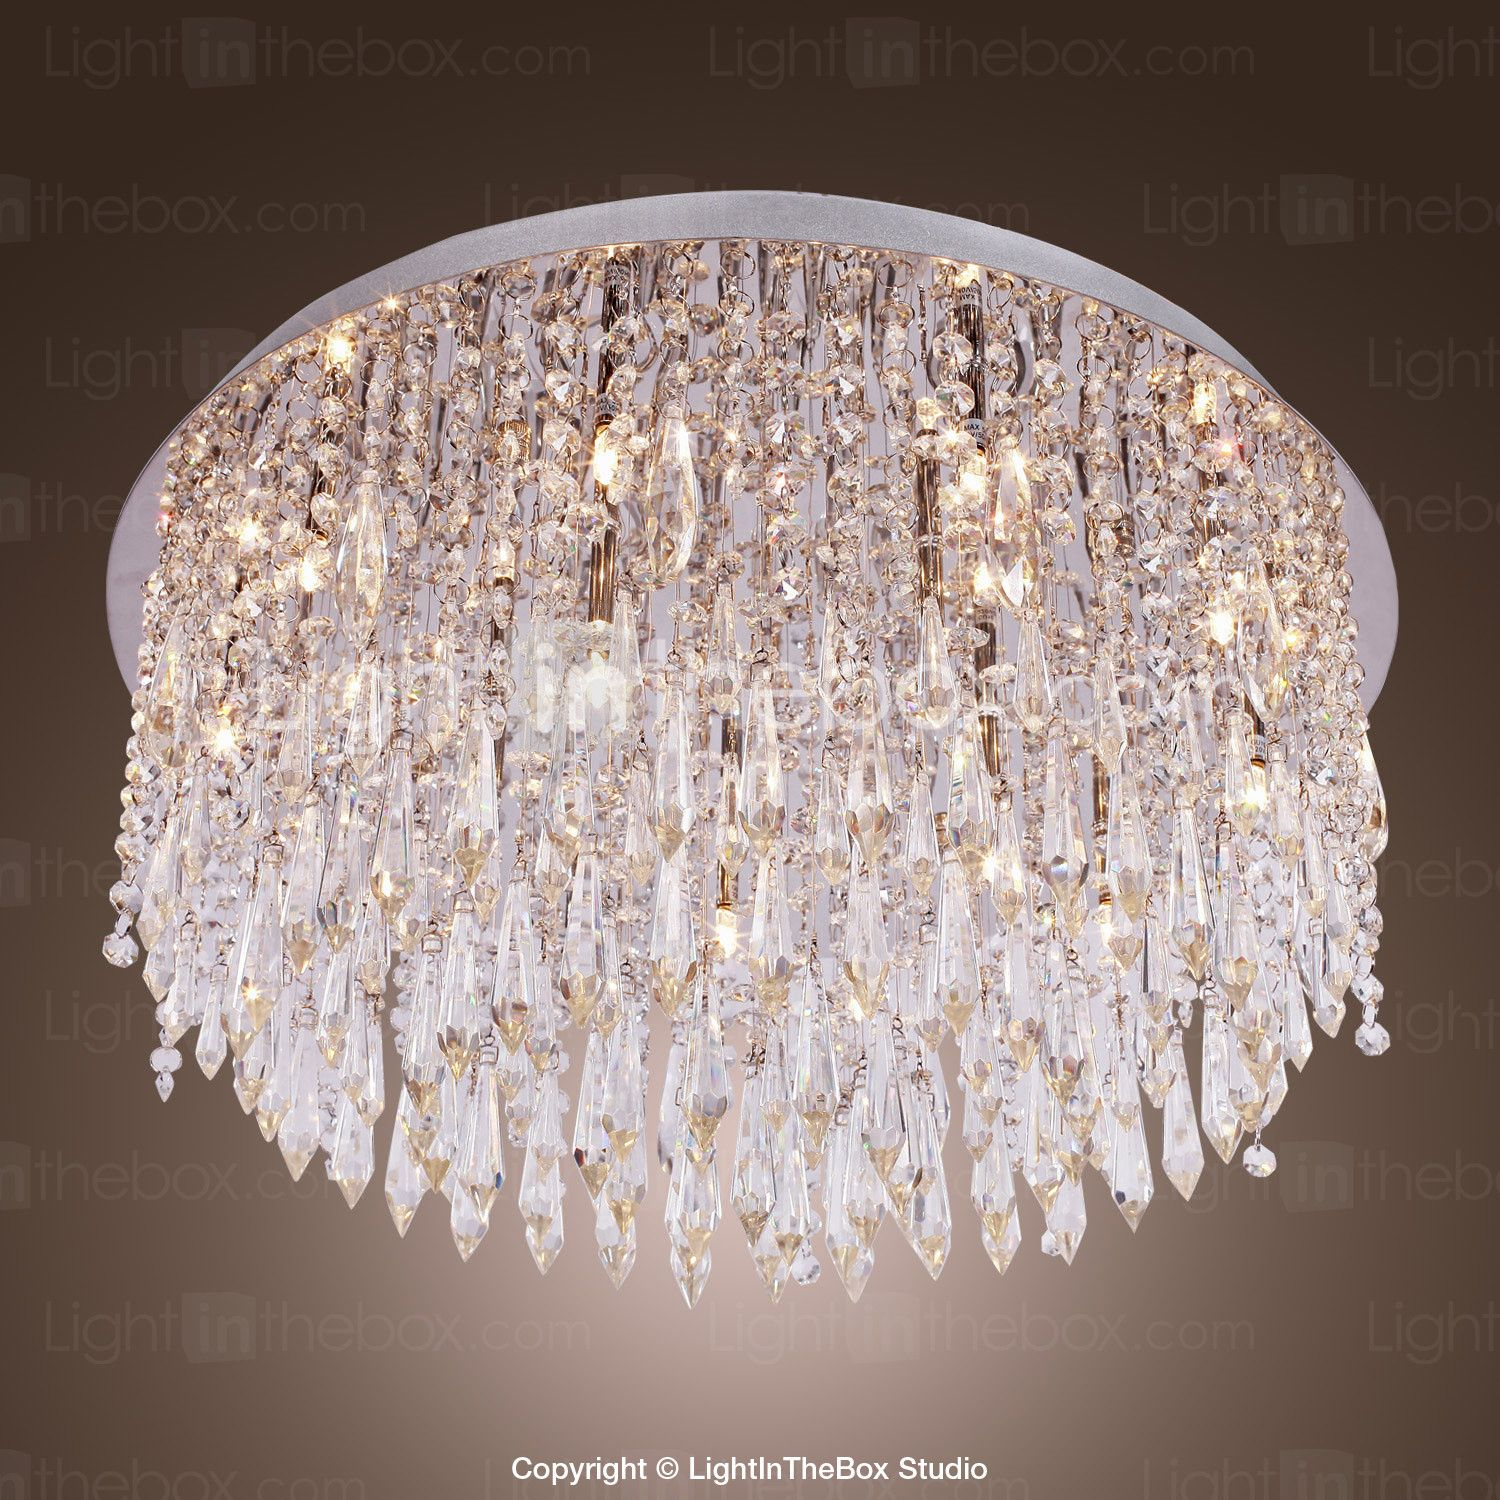 400 64 Sl 55 25 Crystal Flush Mount Lights Crystal Chrome Modern Contemporary 110 120v 220 240v G4 Flush Chandelier Modern Crystal Chandelier Cheap Ceiling Lights